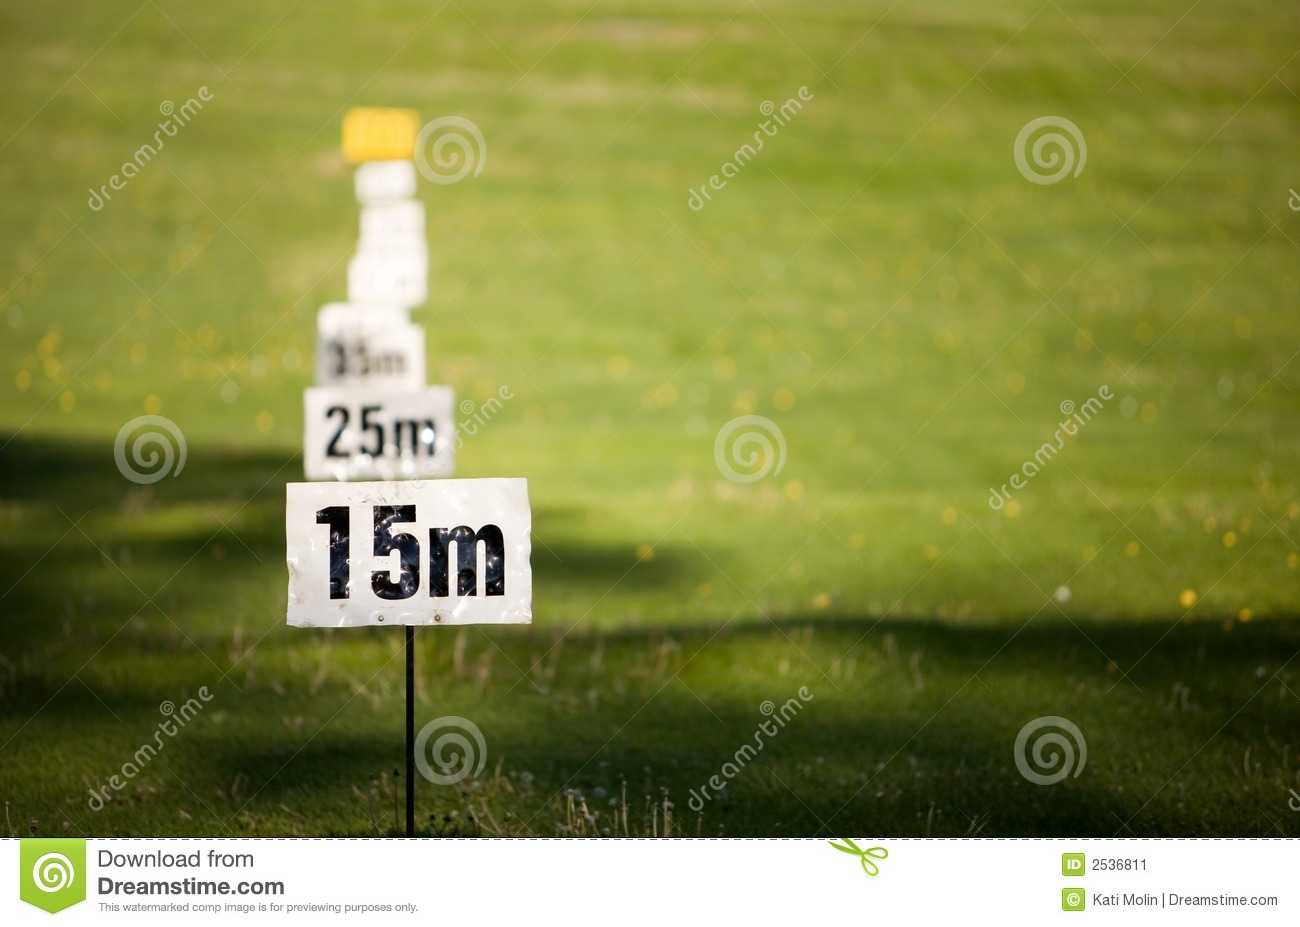 How Long Is A Meter : Meters stock image